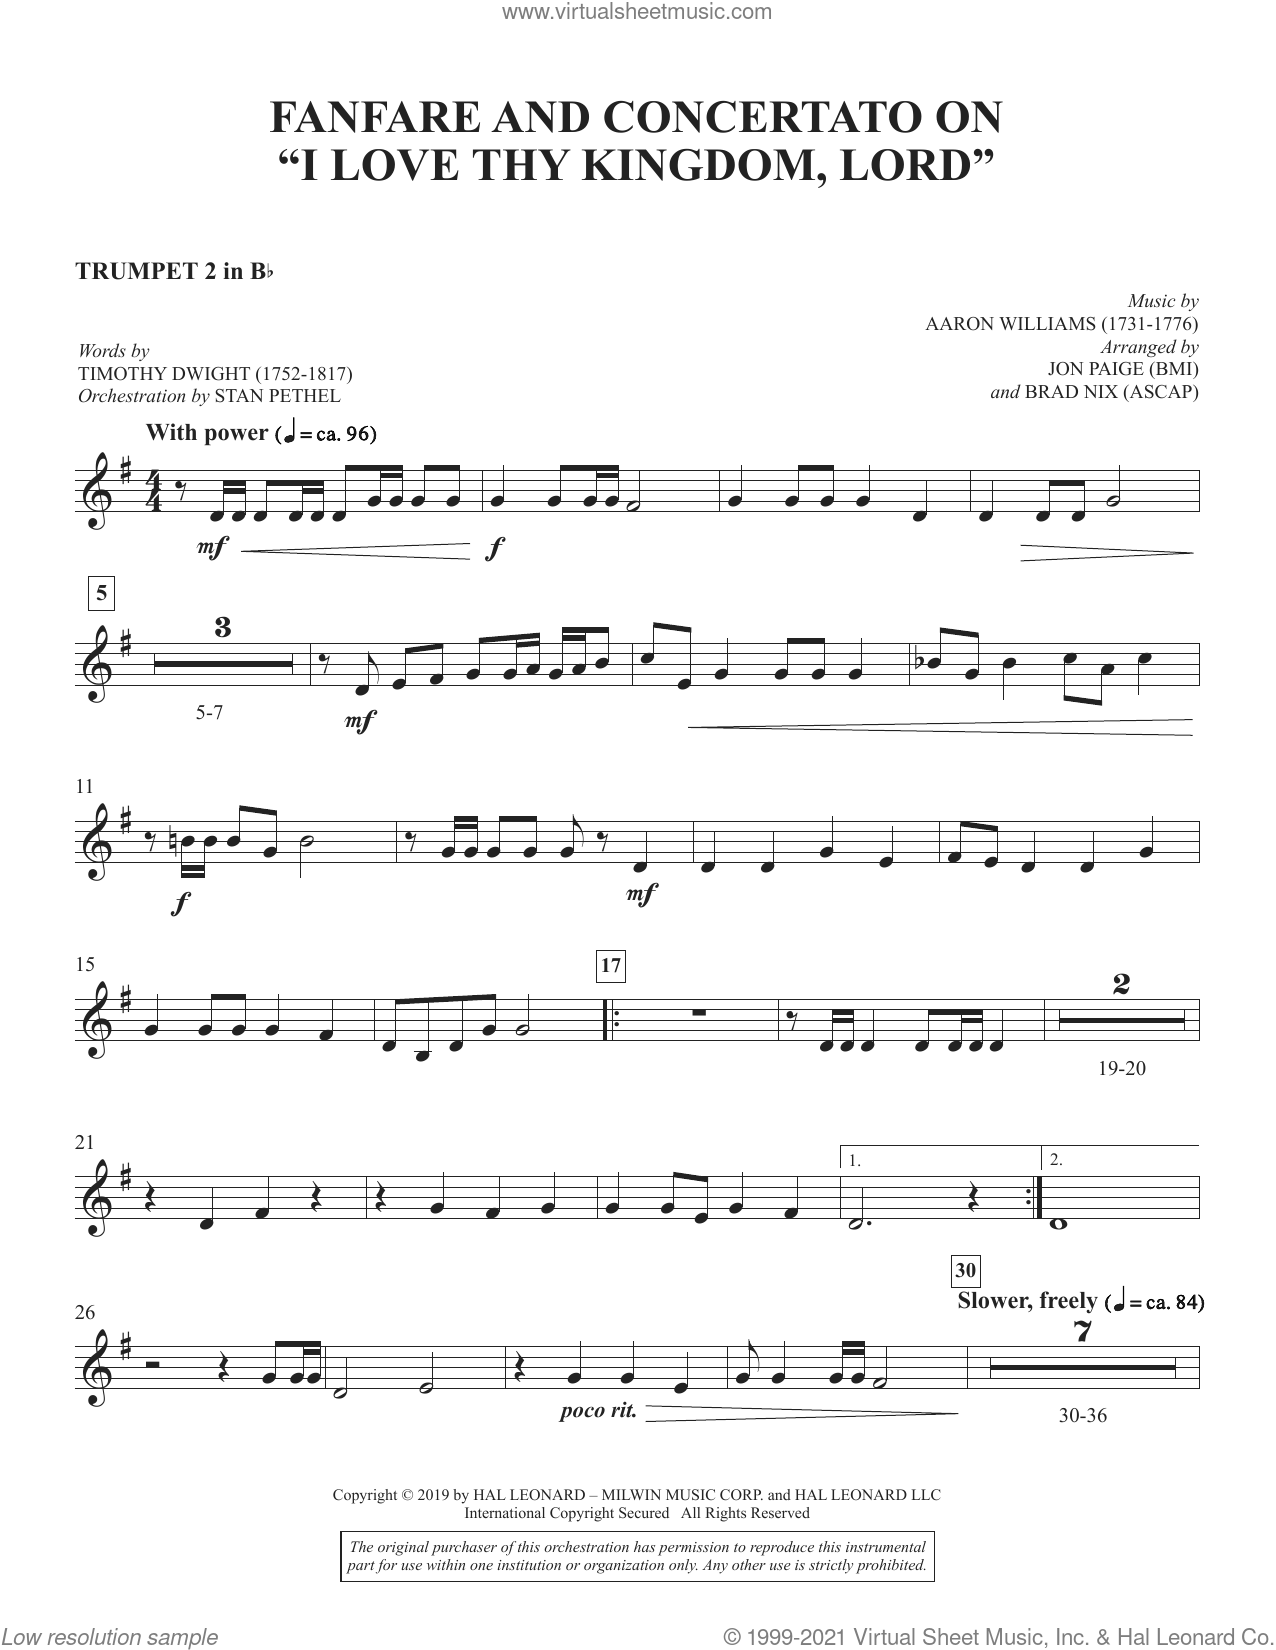 Fanfare and Concertato on 'I Love Thy Kingdom, Lord' (arr. Jon Paige and Brad Nix) sheet music for orchestra/band (Bb trumpet 2) by Timothy Dwight, Brad Nix and Jon Paige, intermediate skill level